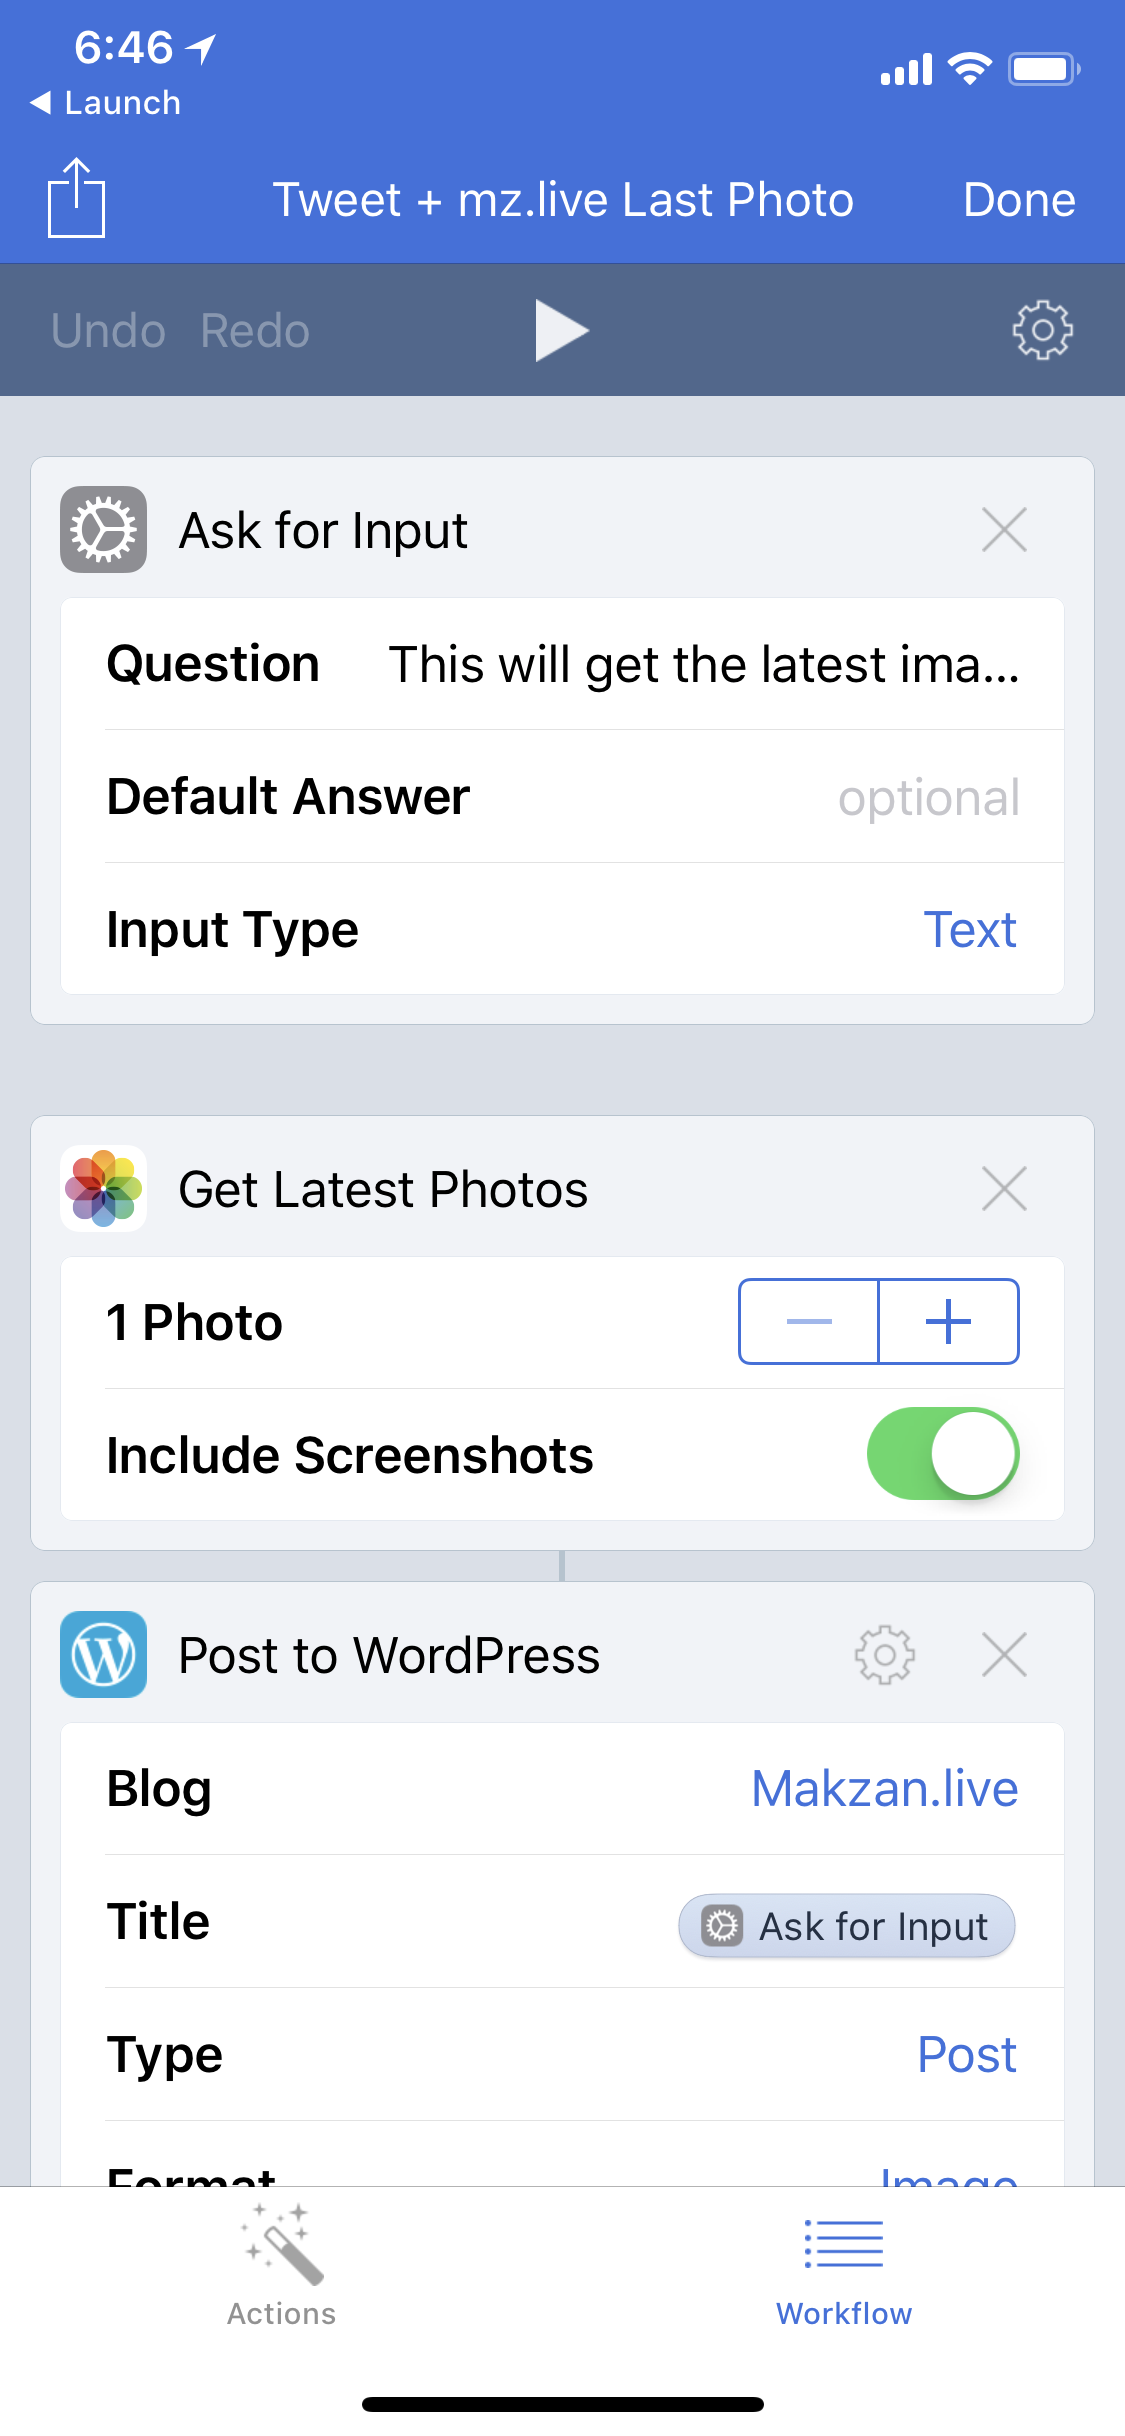 Setup a workflow to quick share latest photo tomakzan.live.